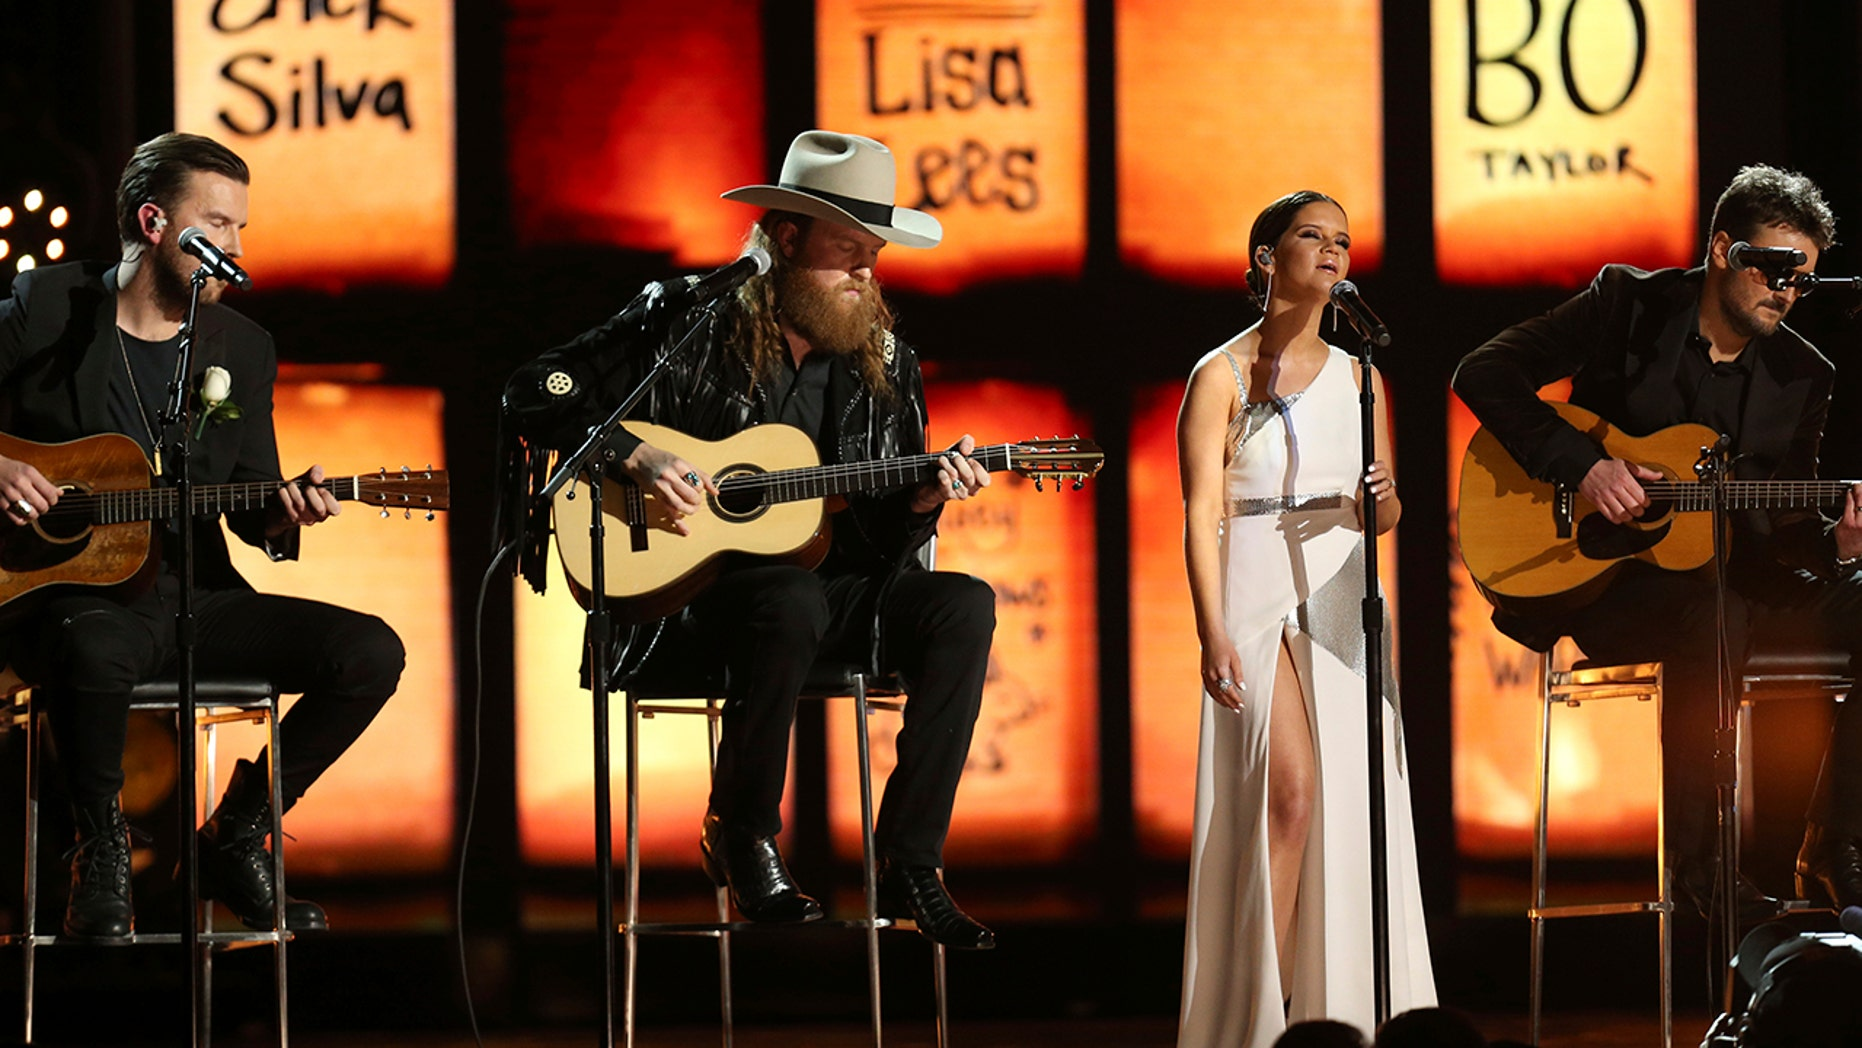 The Brothers Osborne, from left, Maren Morris and Eric Church perform at the 60th annual Grammy Awards at Madison Square Garden on Sunday, Jan. 28, 2018, in New York.